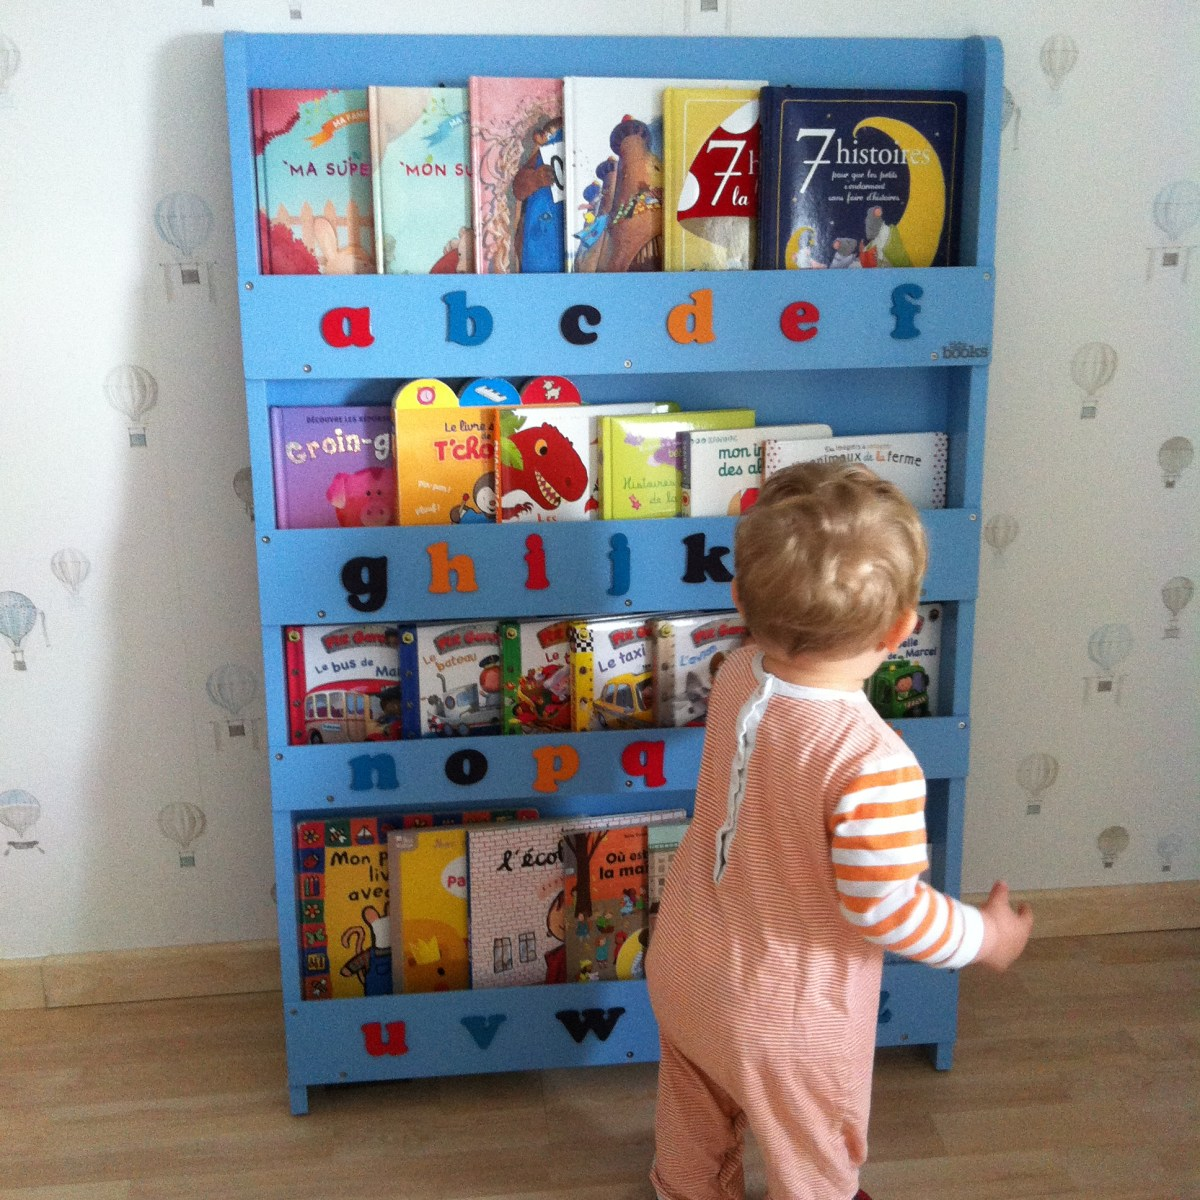 #Concours Tidy Books